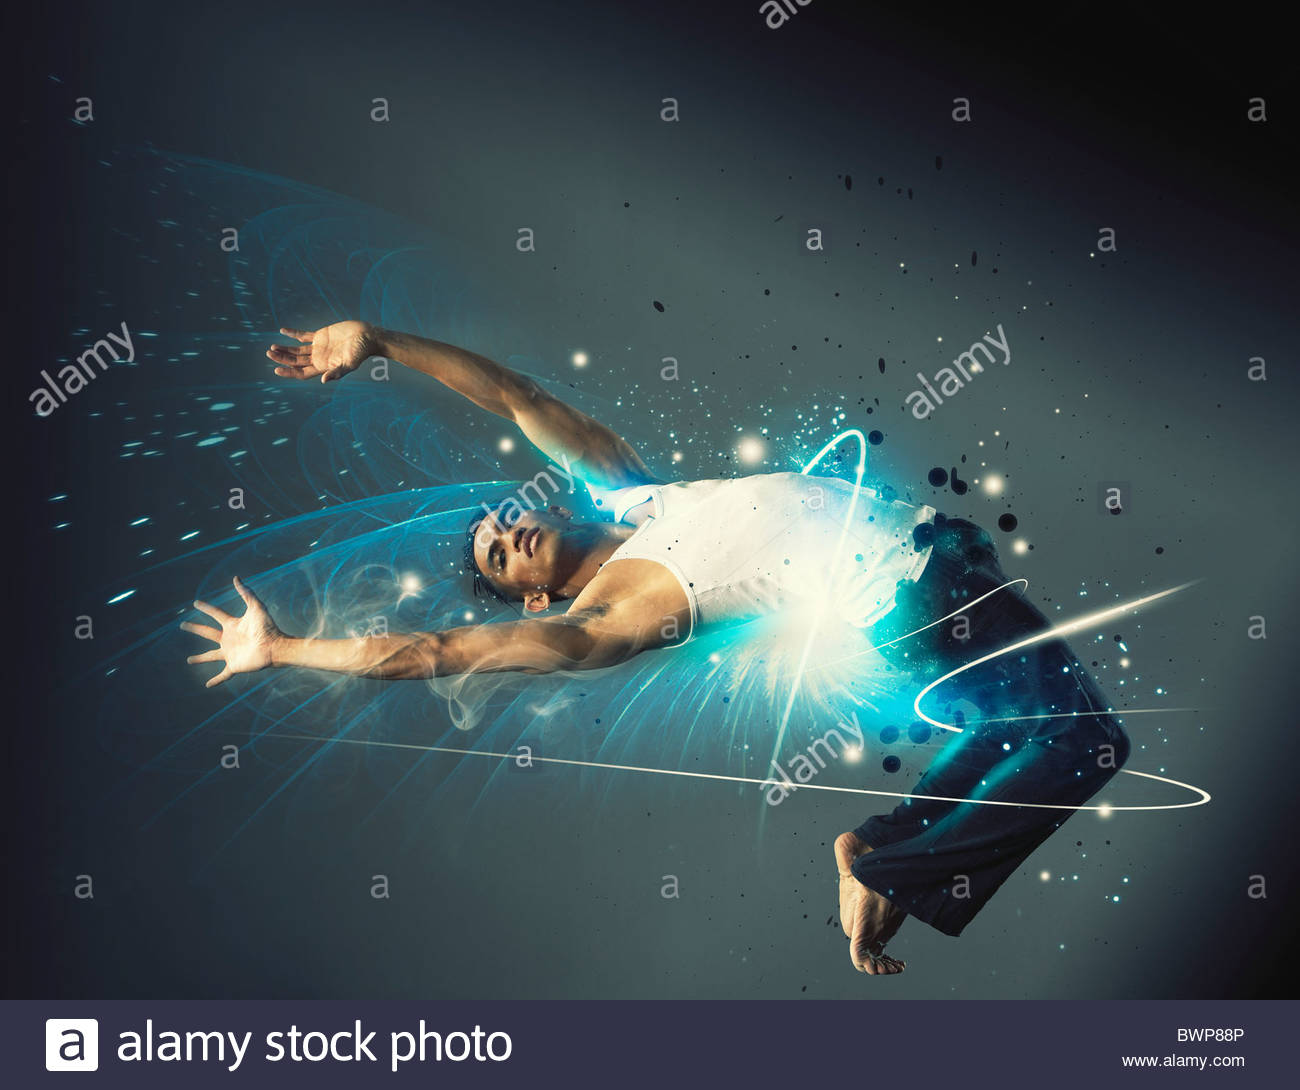 Flexible man dancing - Stock Image